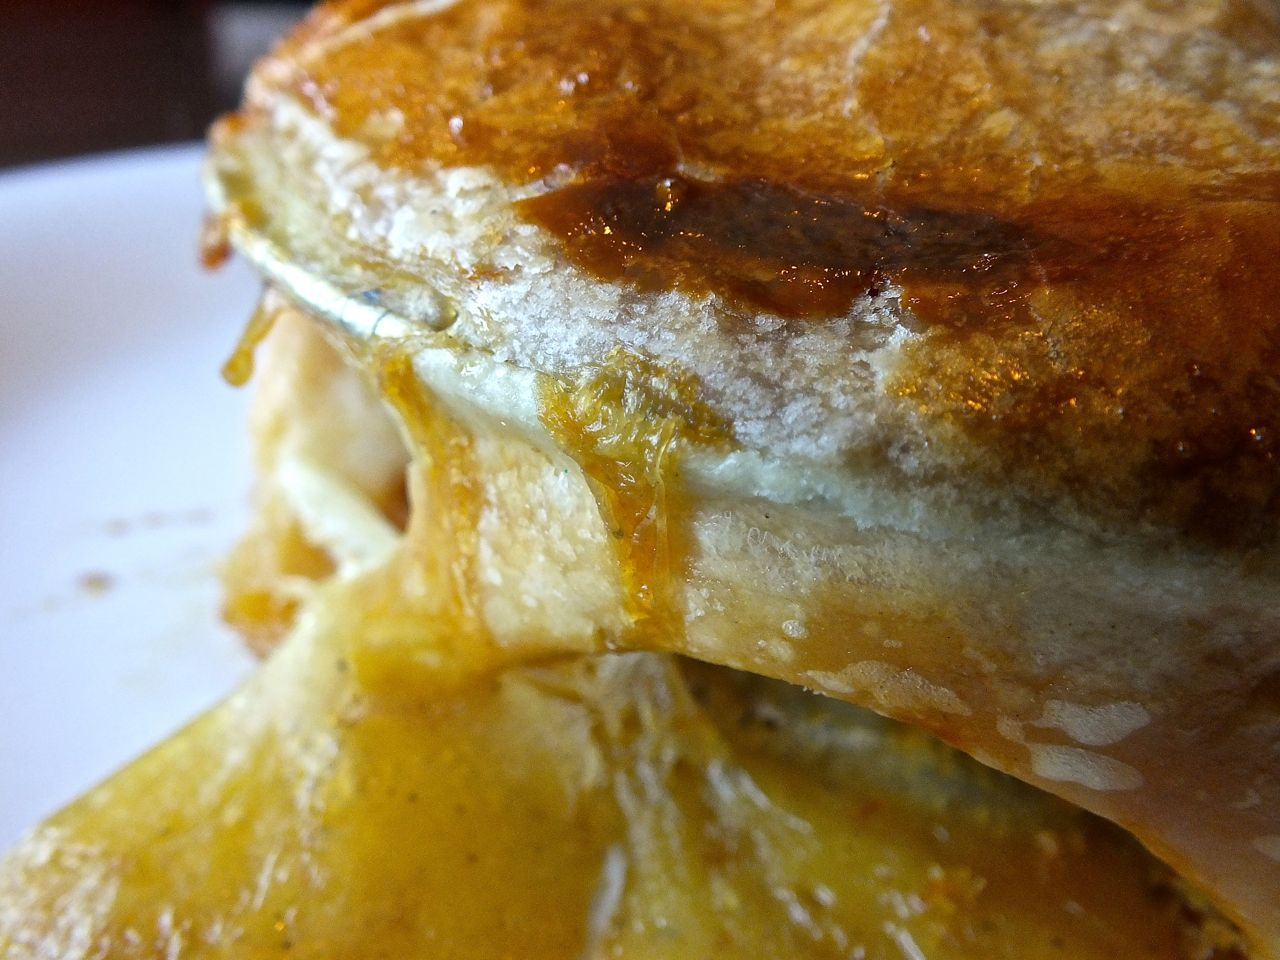 Crisp, flaky crust tops the Fallbrook Cafe's delicious Chciken Pot Pie. Photo by Edward Simon for the Los Angeles Beat